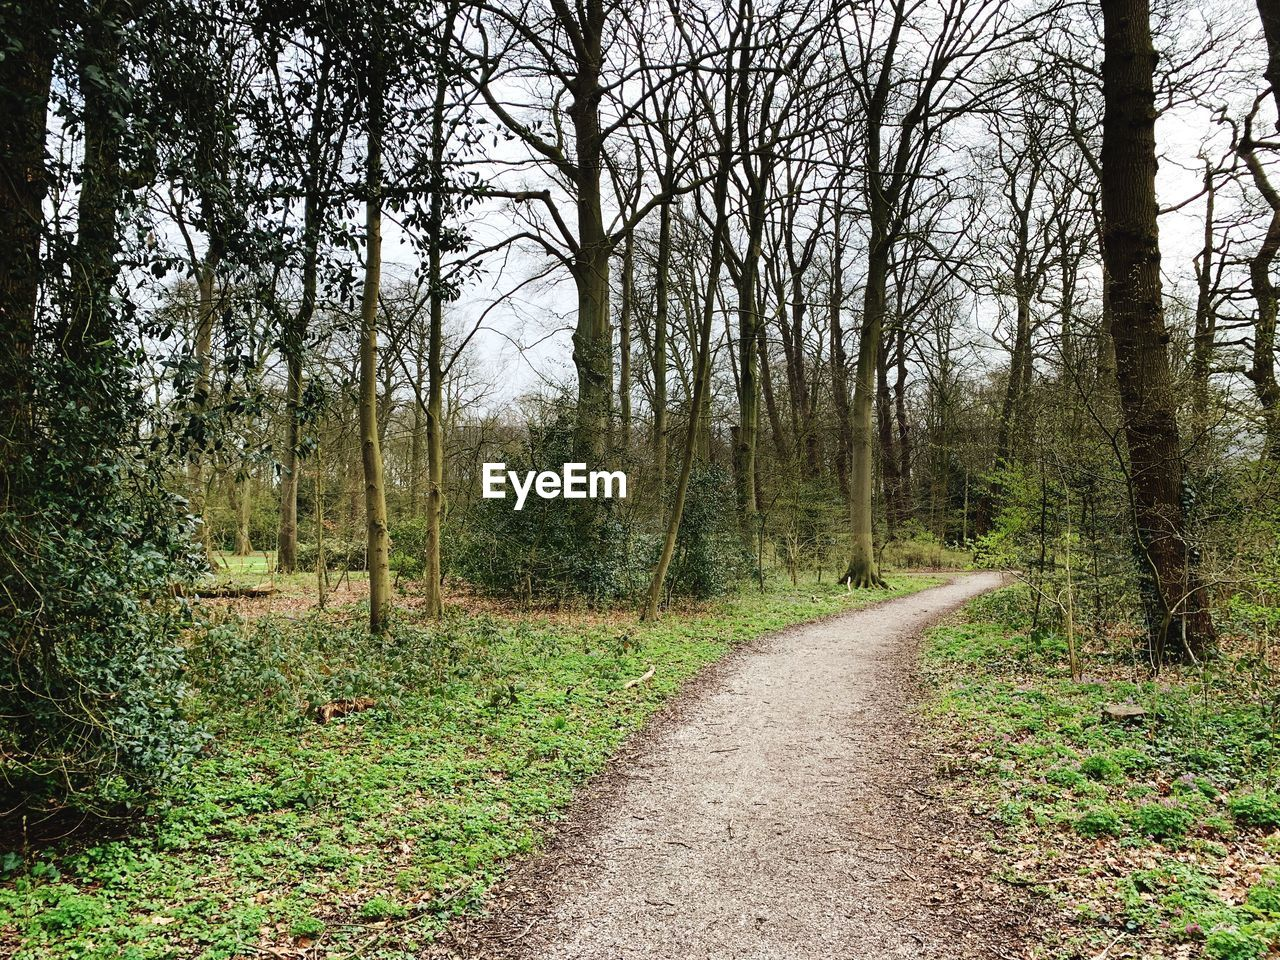 tree, plant, forest, land, the way forward, direction, tranquility, tranquil scene, no people, nature, road, non-urban scene, beauty in nature, day, woodland, growth, trunk, tree trunk, scenics - nature, dirt, outdoors, diminishing perspective, trail